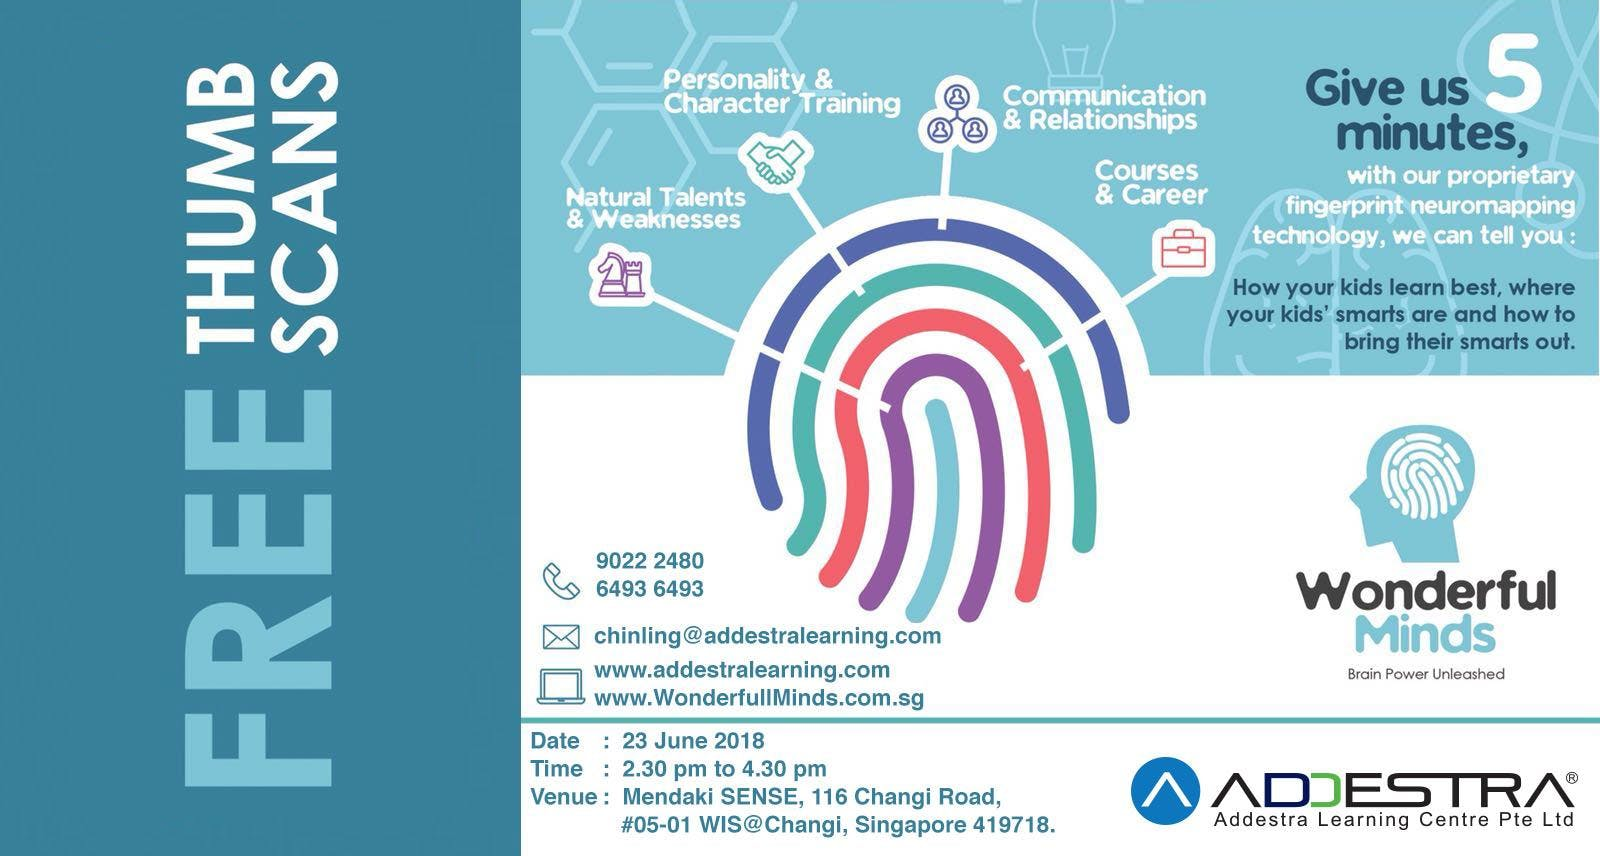 [Workshop] Discover the Secrets to 8 Multi-Intelligences Your Child Possesses.